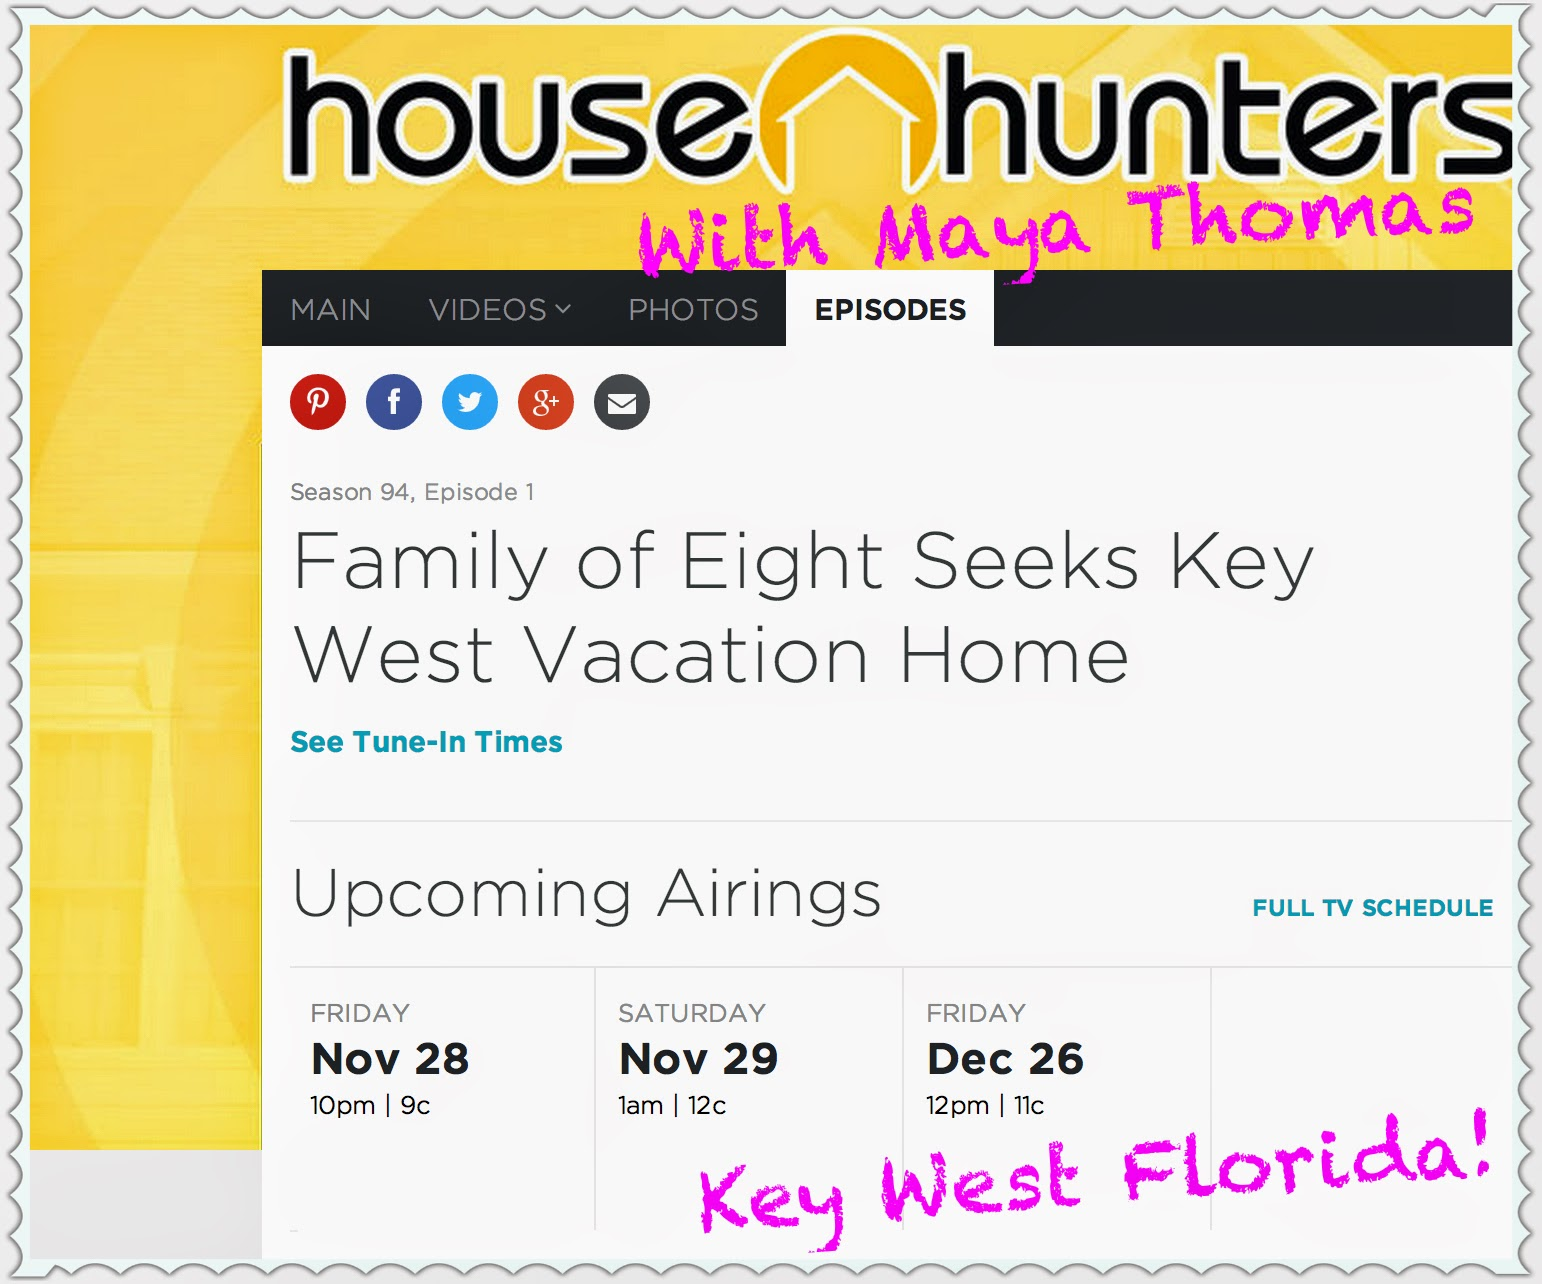 Hgtv schedule free you basically know the schedule of the for Hgtv schedule house hunters